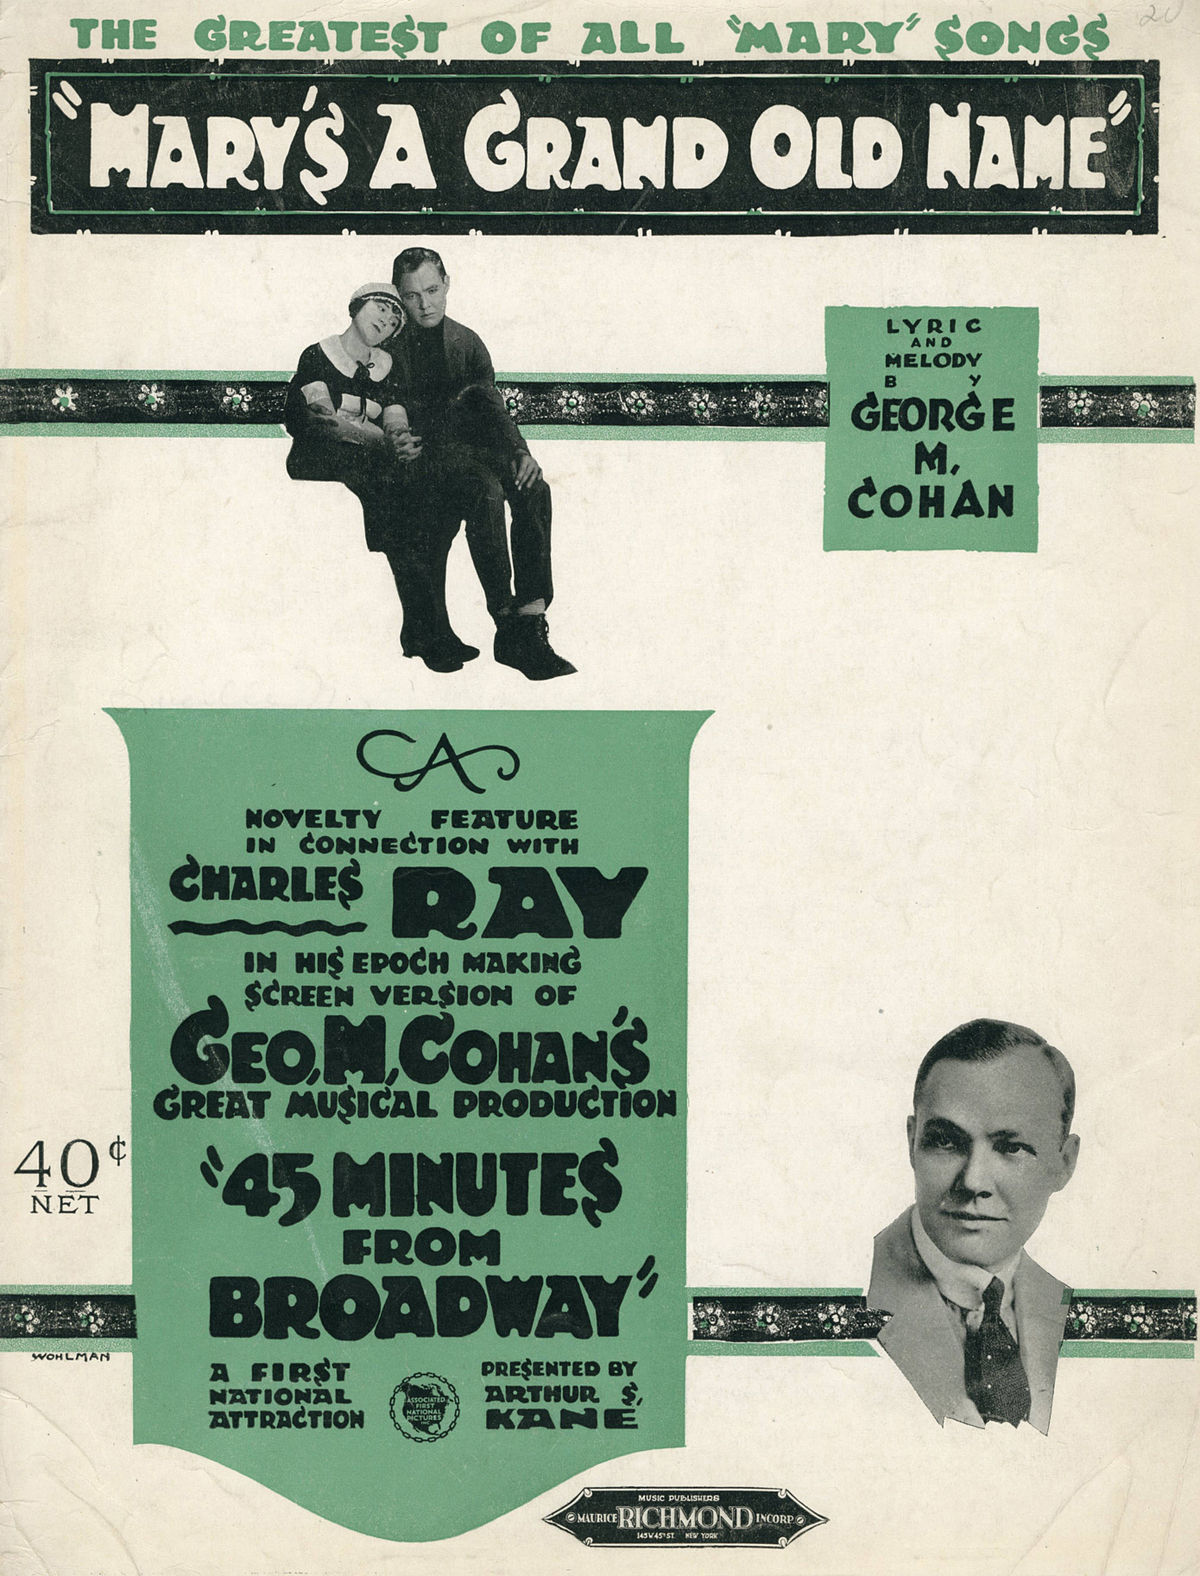 Forty-five Minutes from Broadway - Wikipedia